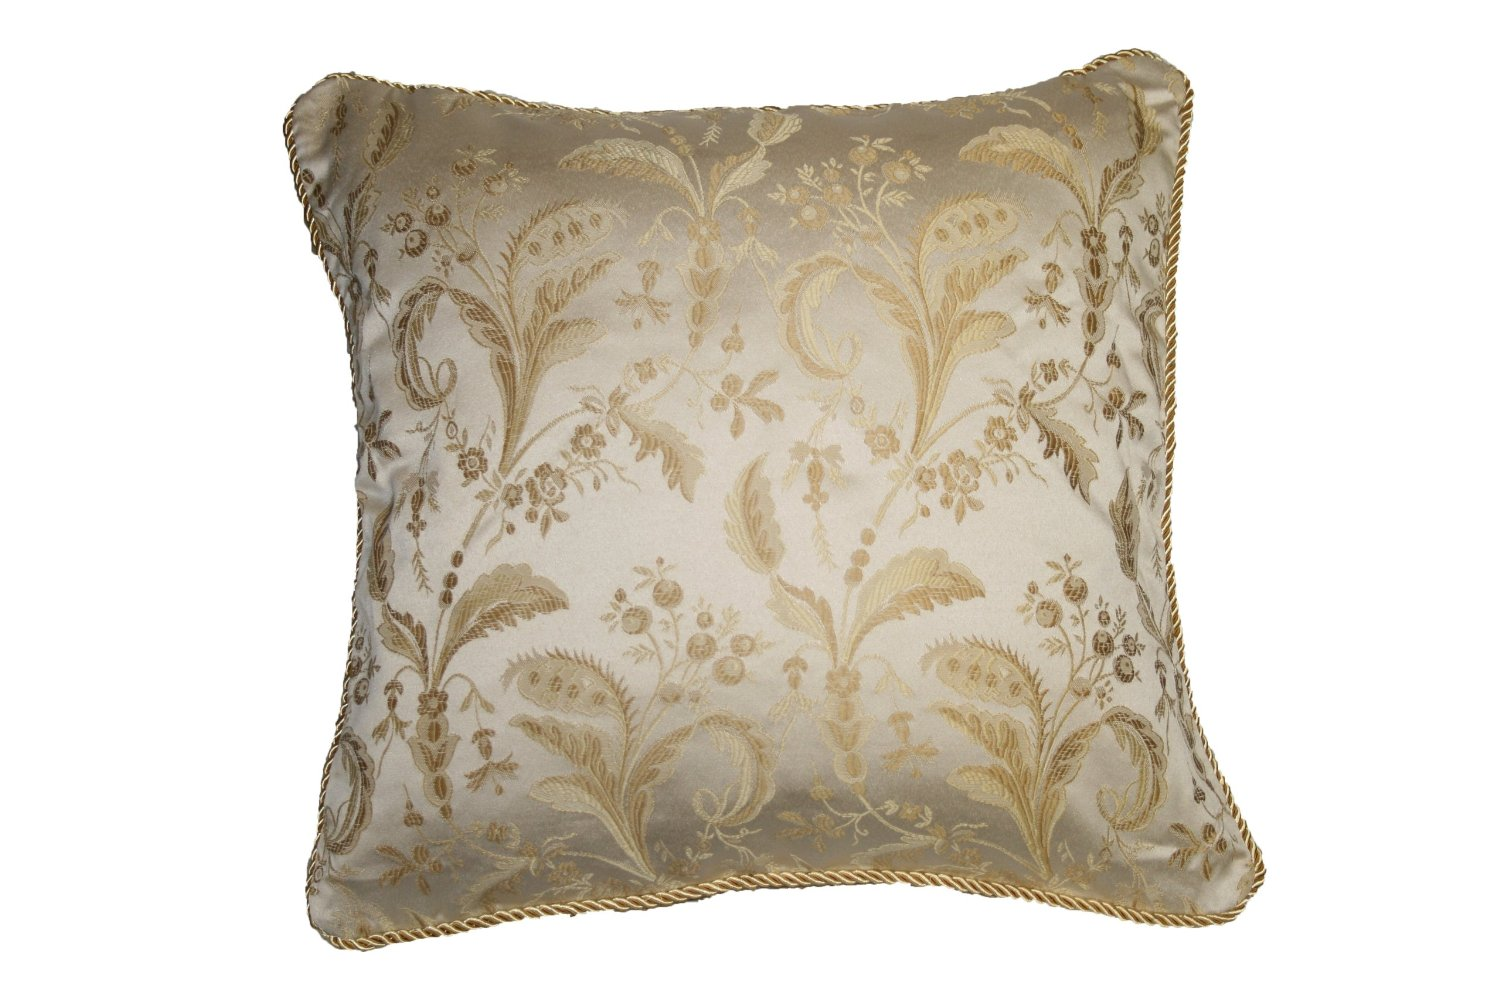 Luxury Decorative Bed Pillows : Luxury Damask Design Decorative Throw Pillow eBay